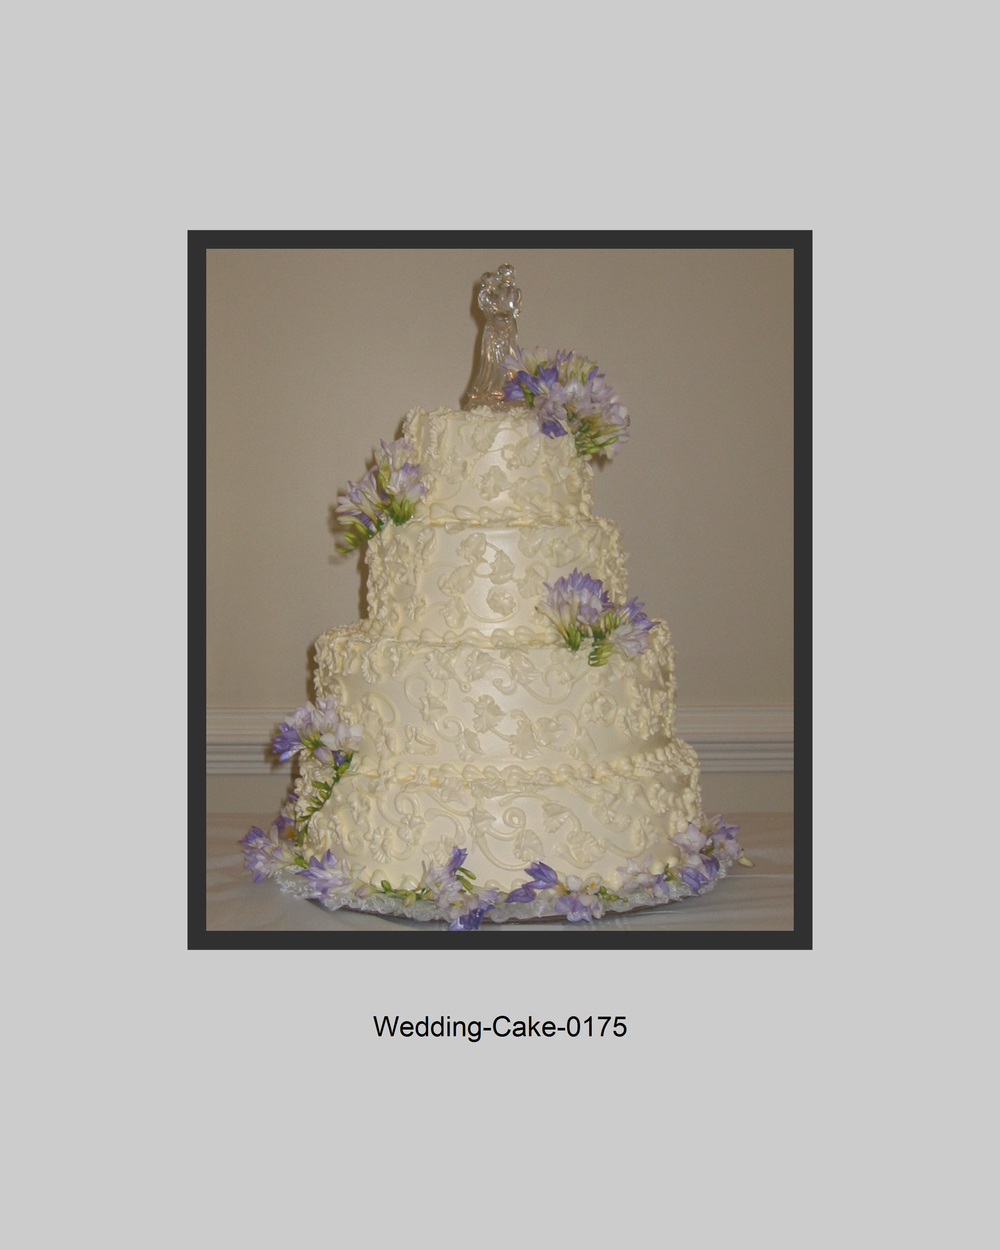 Wedding-Cake-Prints-0175.jpg